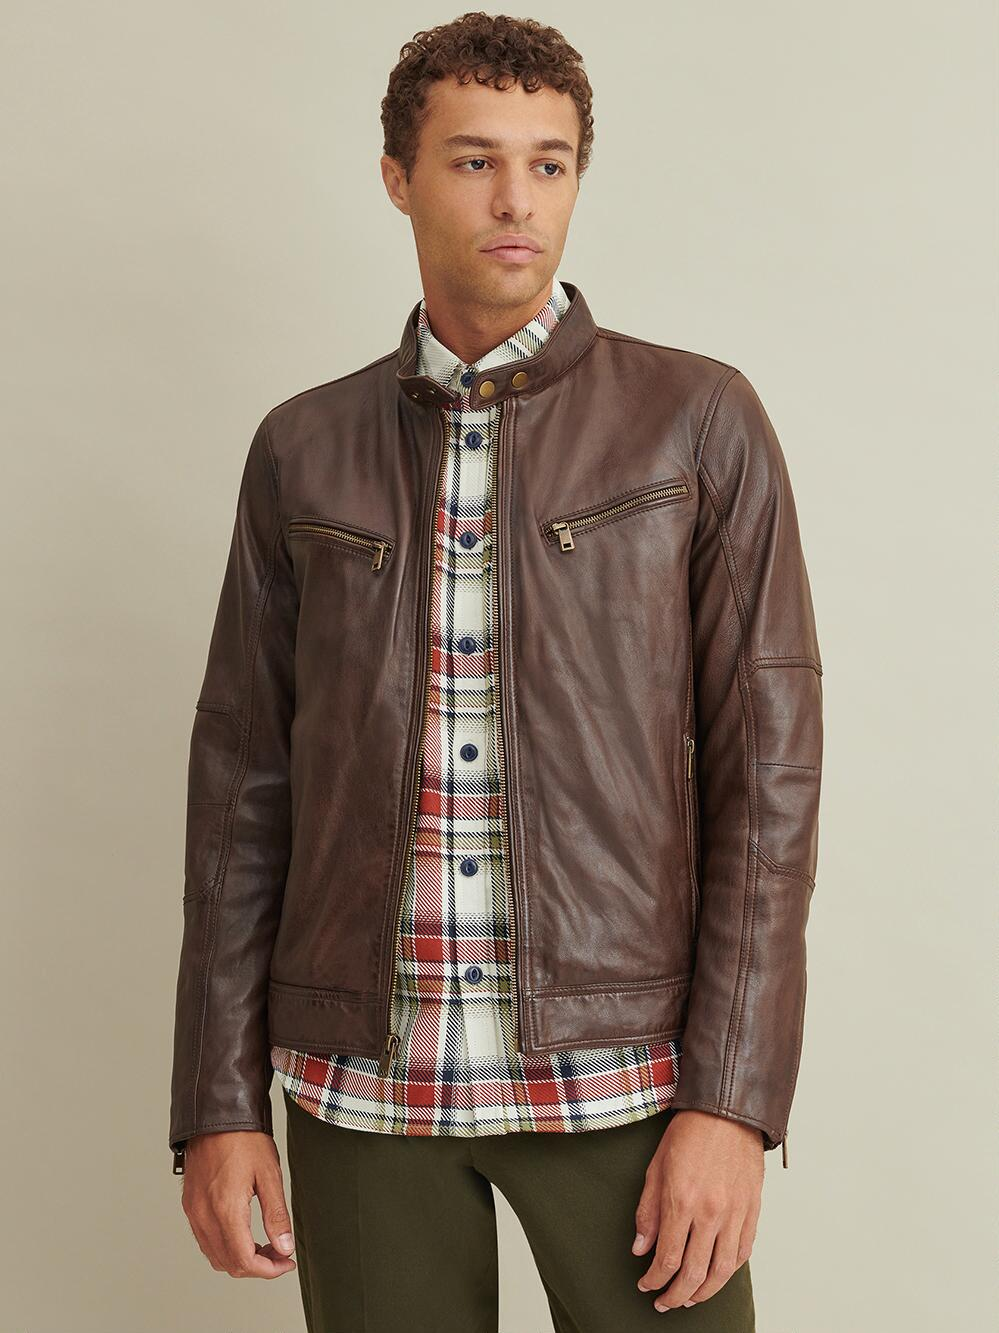 Brent Leather Moto Jacket Moto jacket, Jackets, Leather men